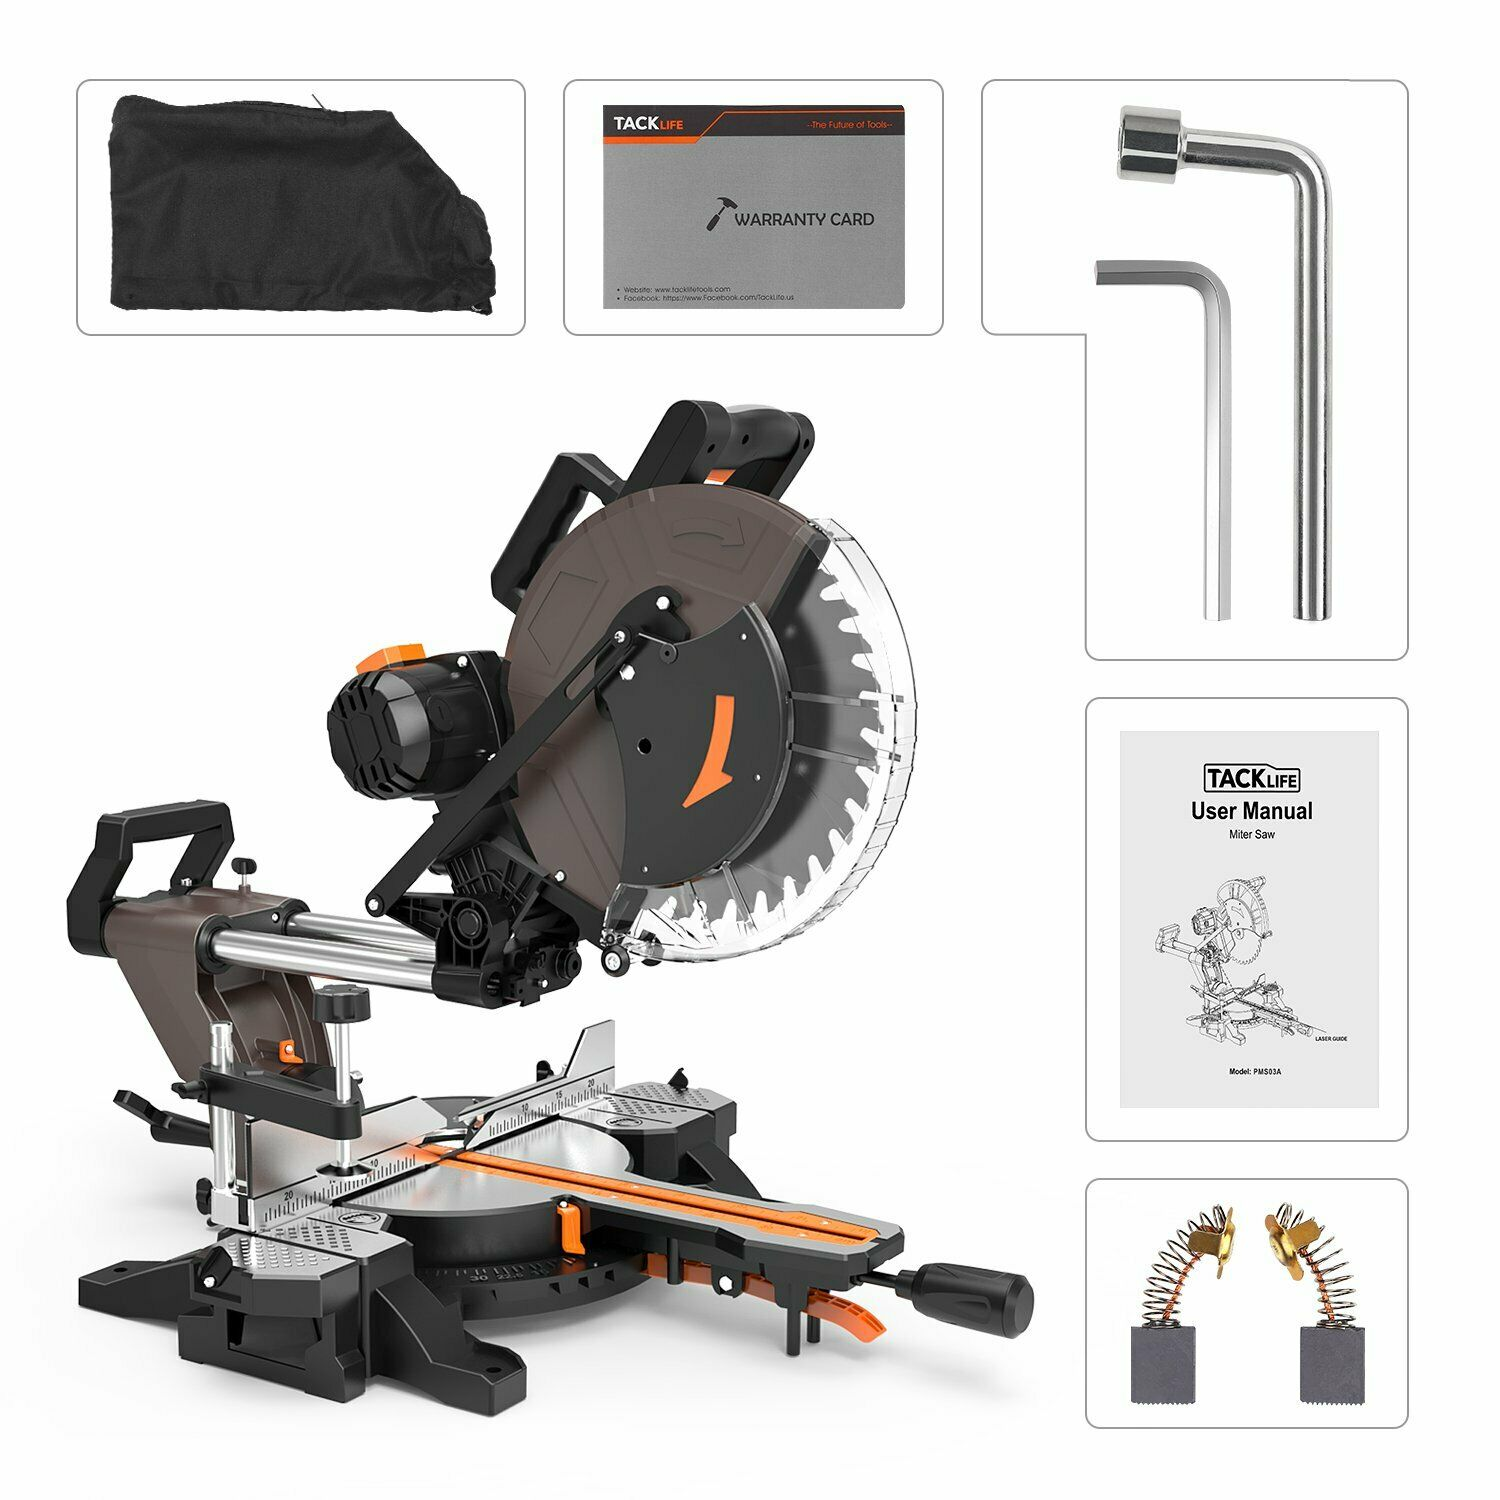 Sliding Miter Saw, Tacklife 12inch 15Amp Double-Bevel Compound Miter Saw  with La